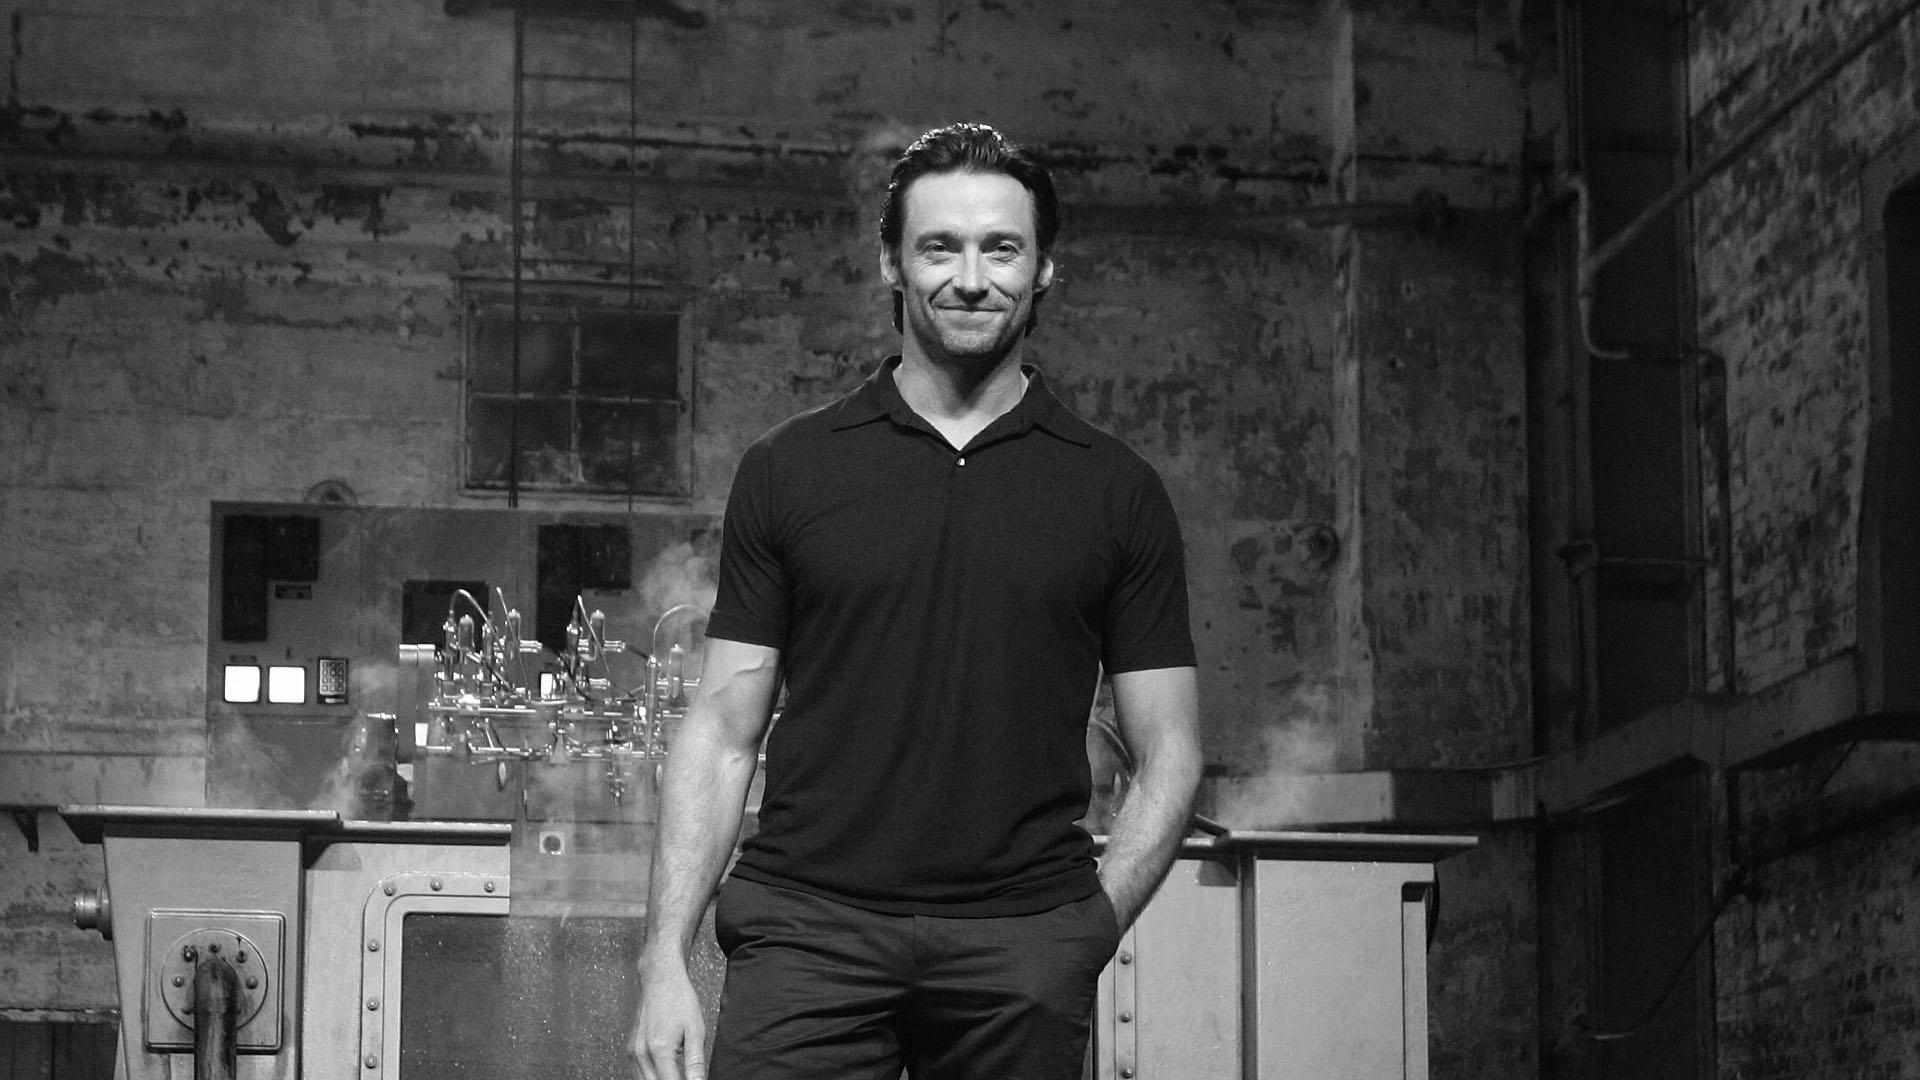 monochrome hugh jackman wallpaper 52485